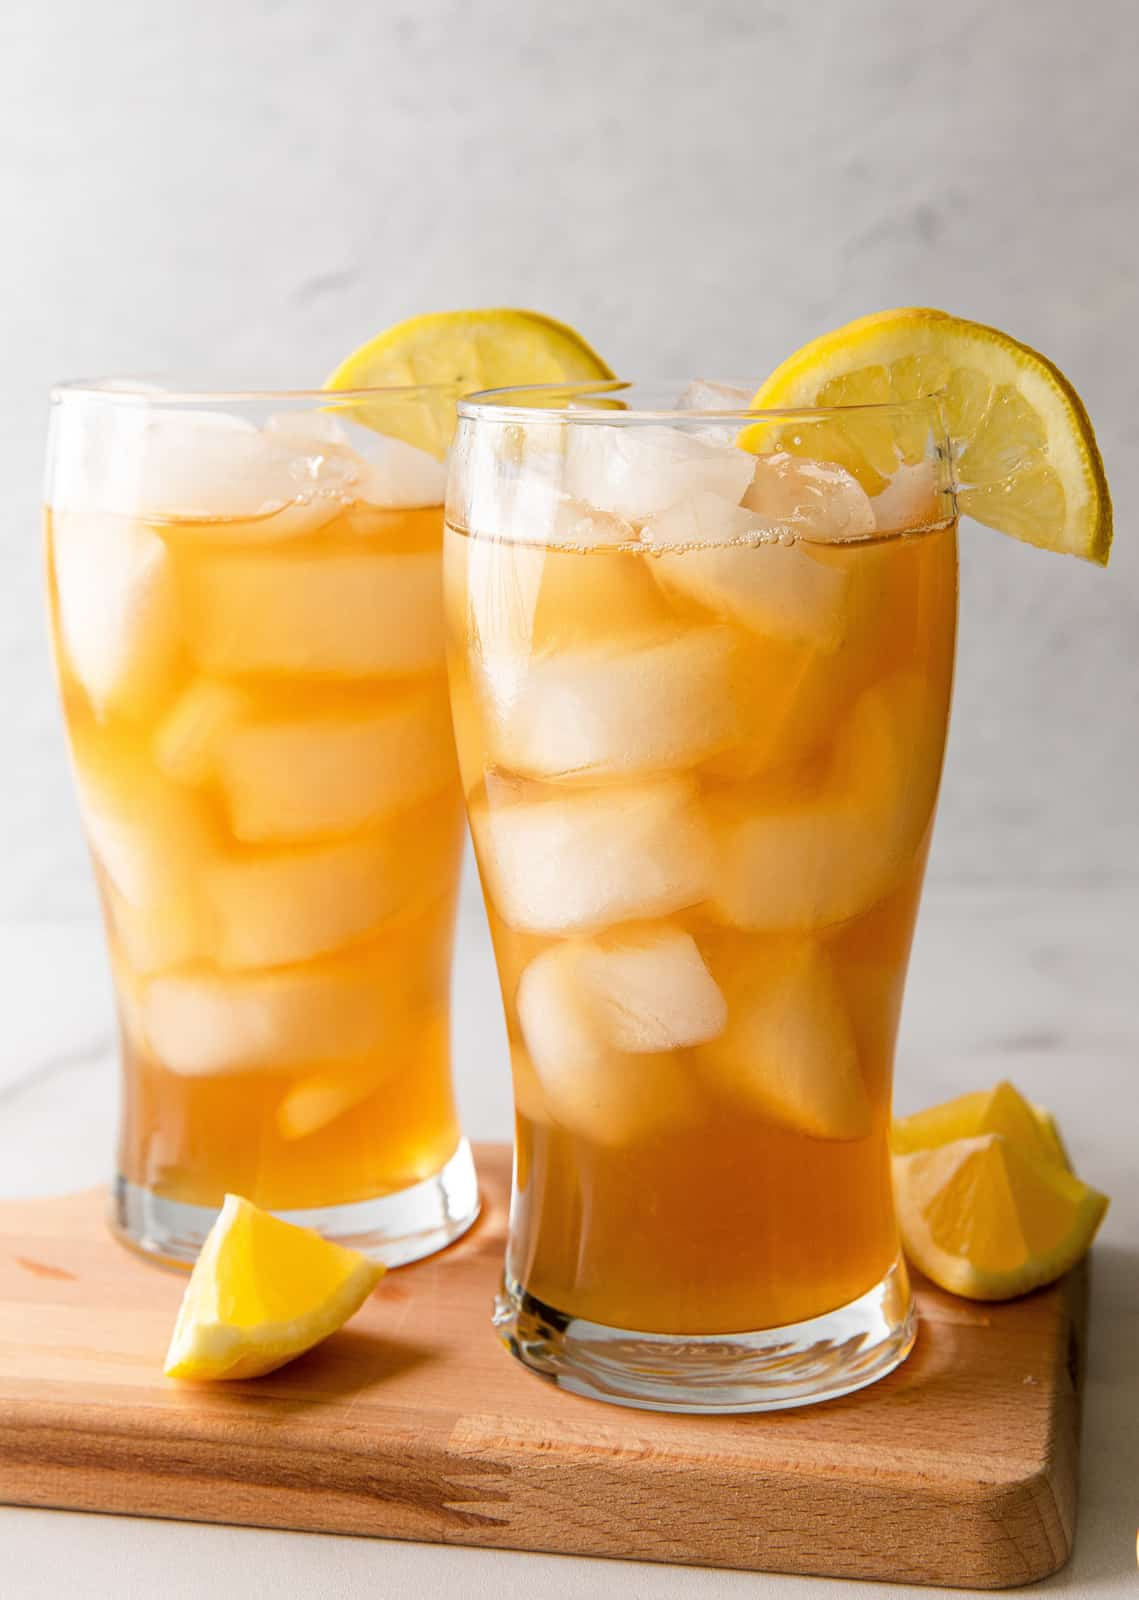 Two Arnold palmers with lemons on wooden board